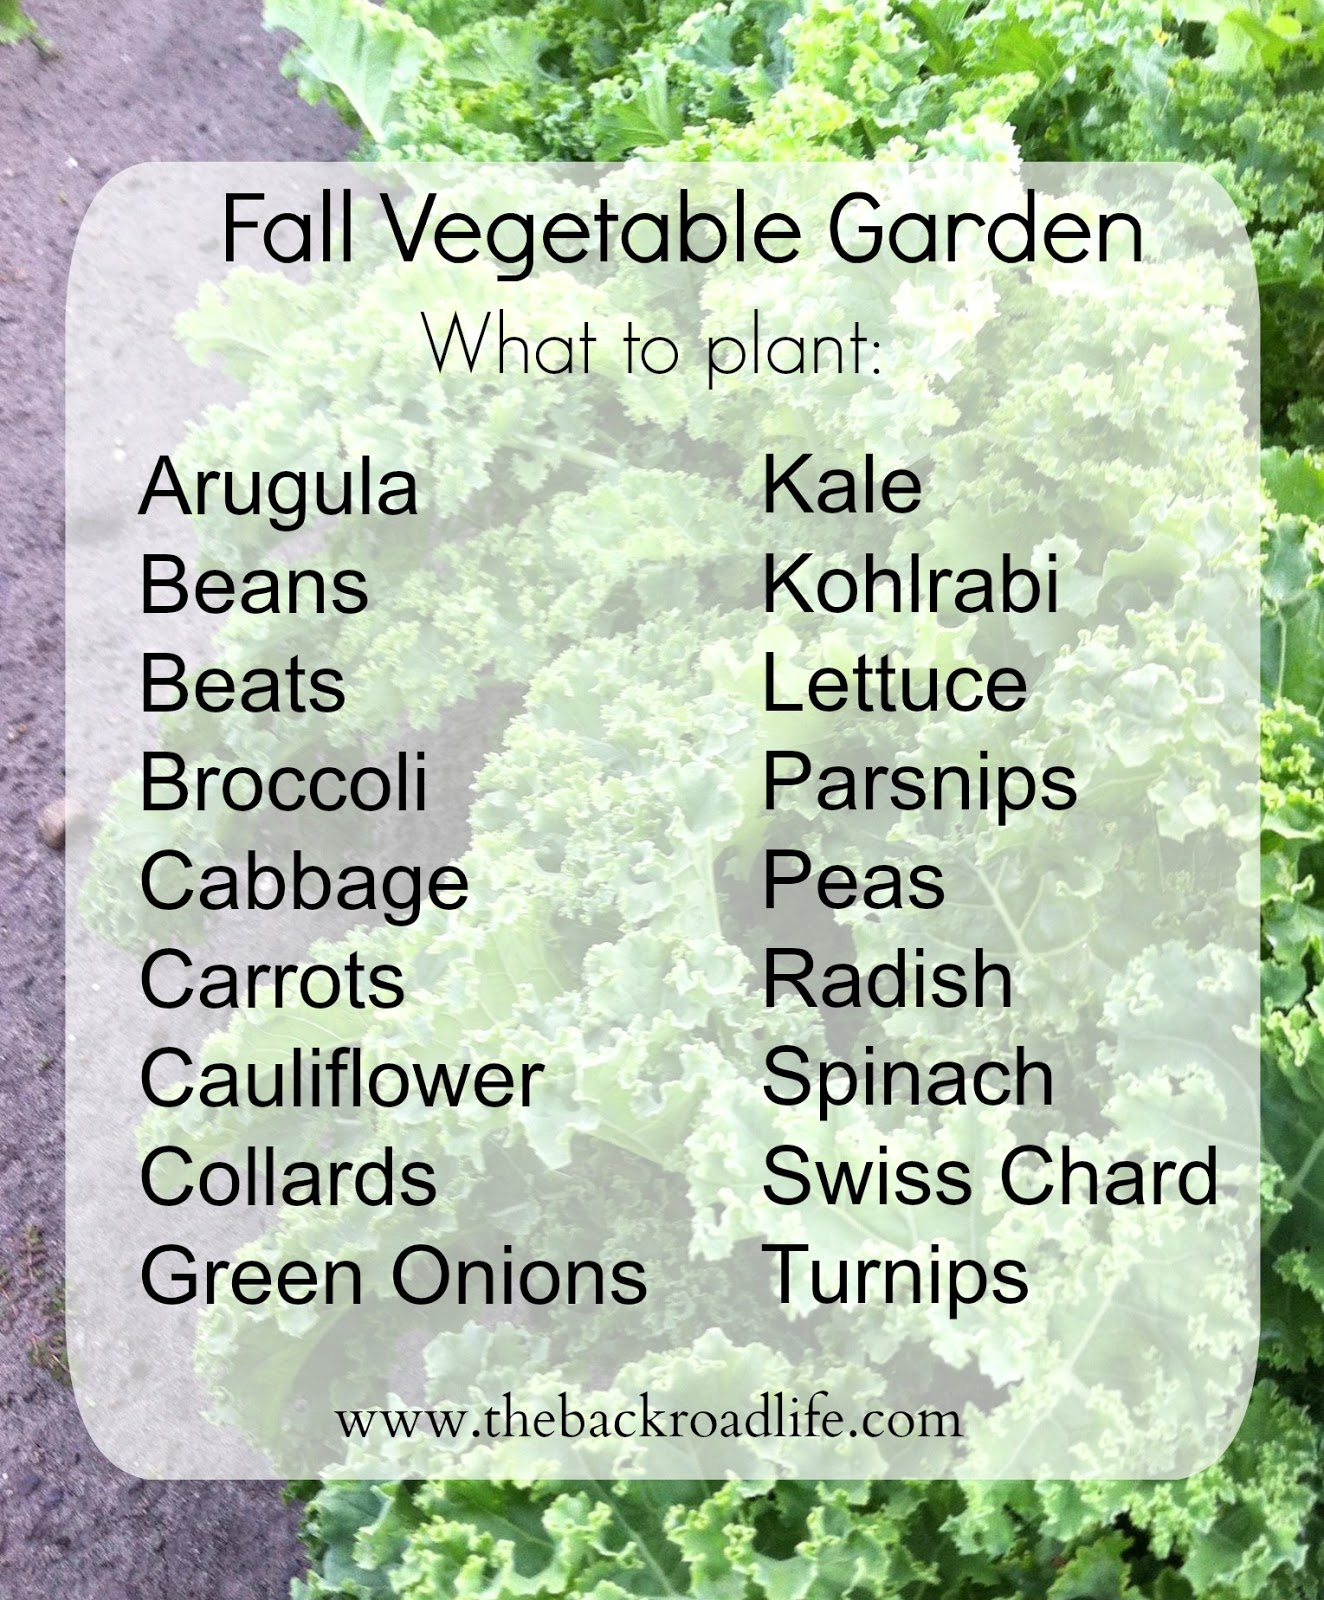 fall vegetable gardenwhen to and what to plant - Fall Vegetable Garden